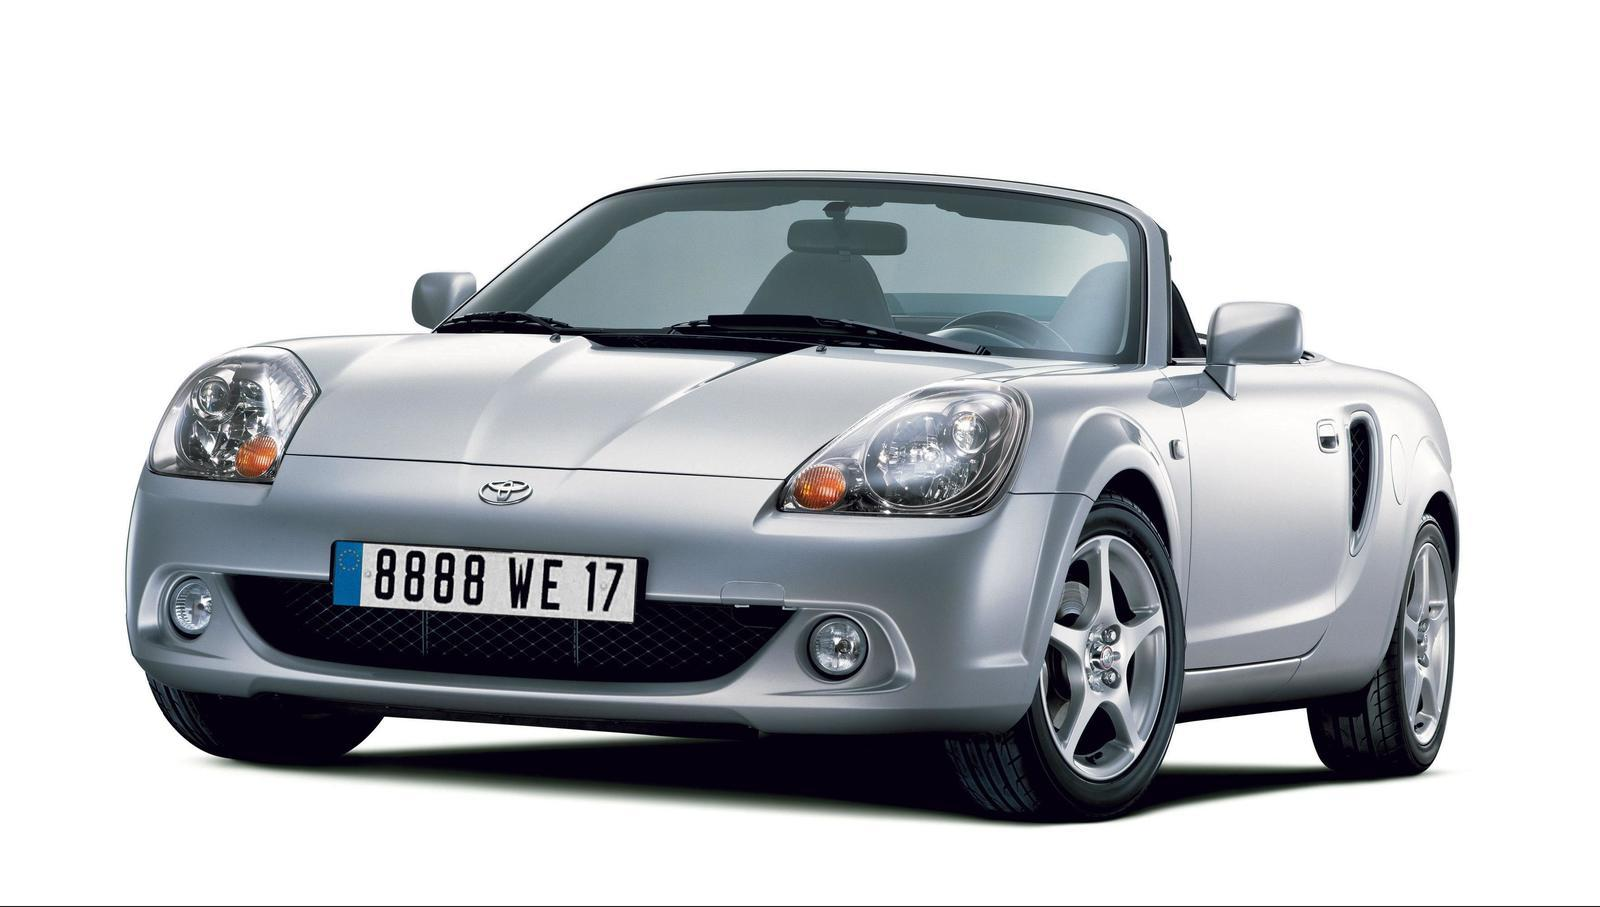 Most Affordable Sports Cars >> 2002 Toyota MR2 Review - Top Speed